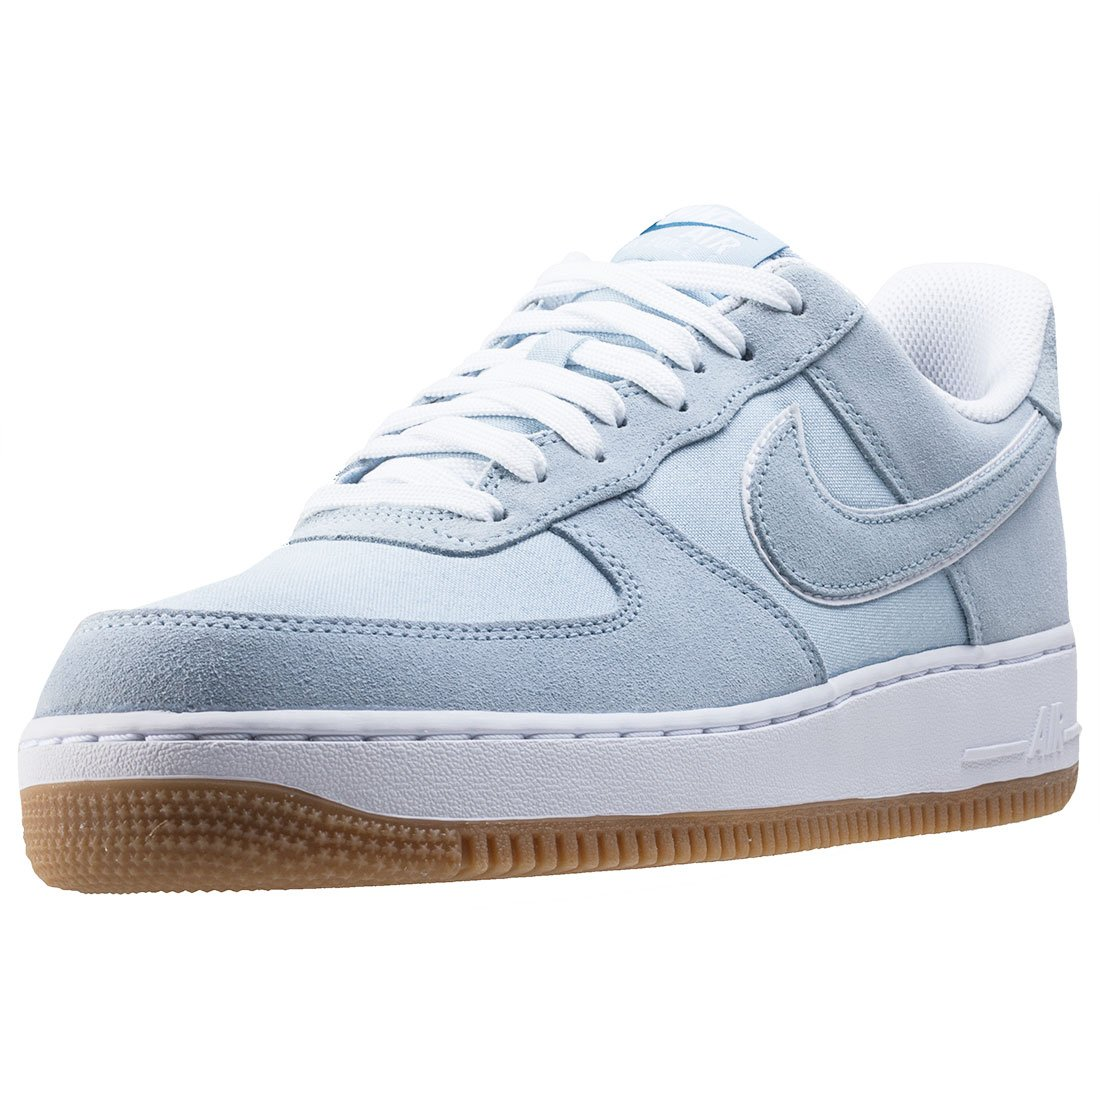 b0348a7bbc7c Galleon - Nike Mens Air Force 1 Low LT Armory Blue Lt Armory Blue White Gum  Lt Brown Leather Basketball Shoes 12 M US